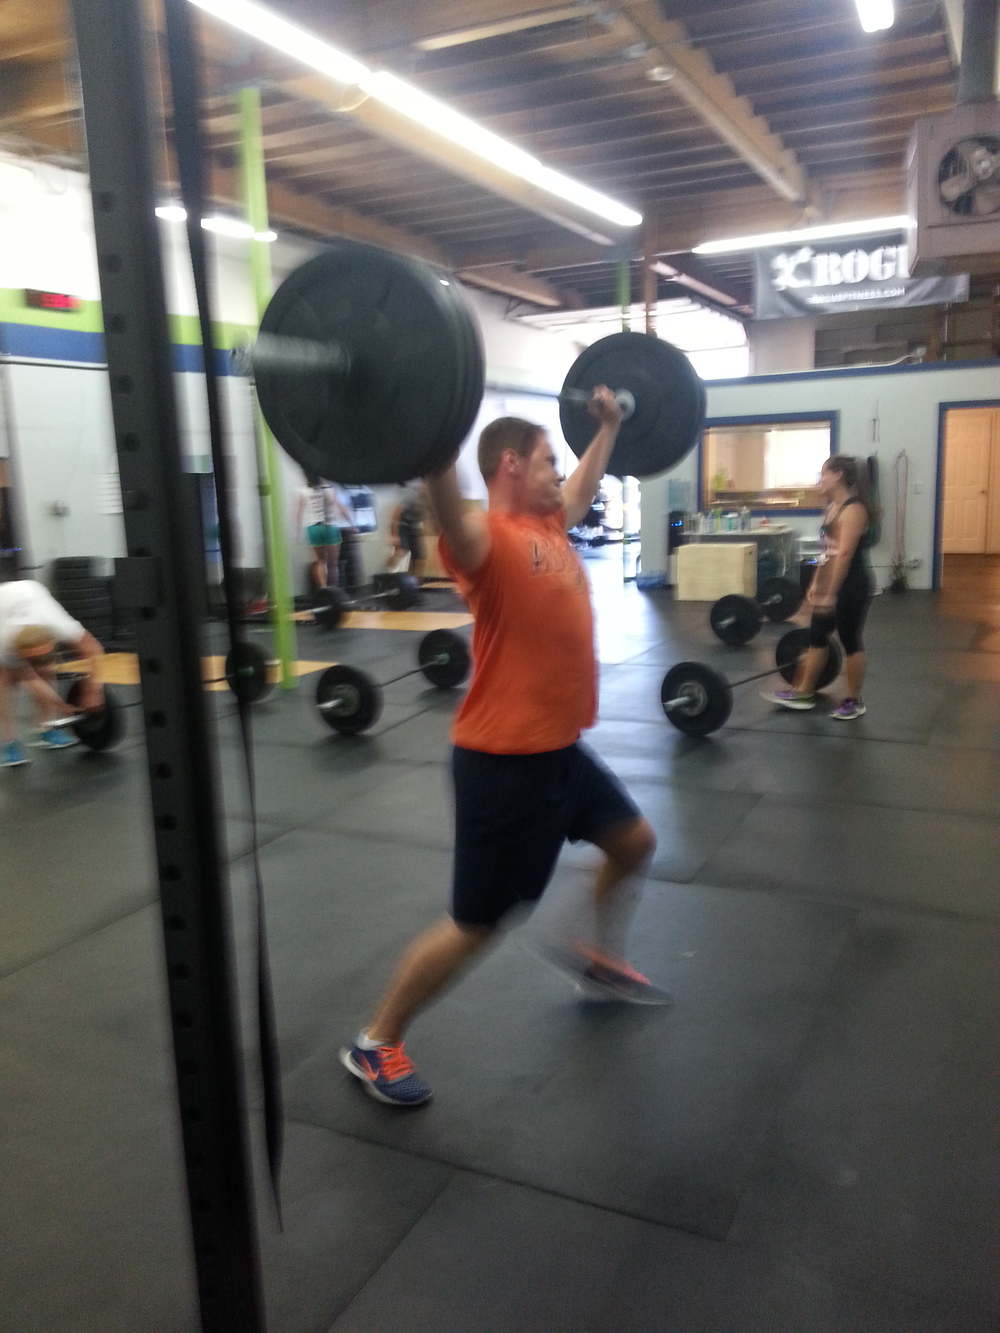 Chad finishing up that snatch!